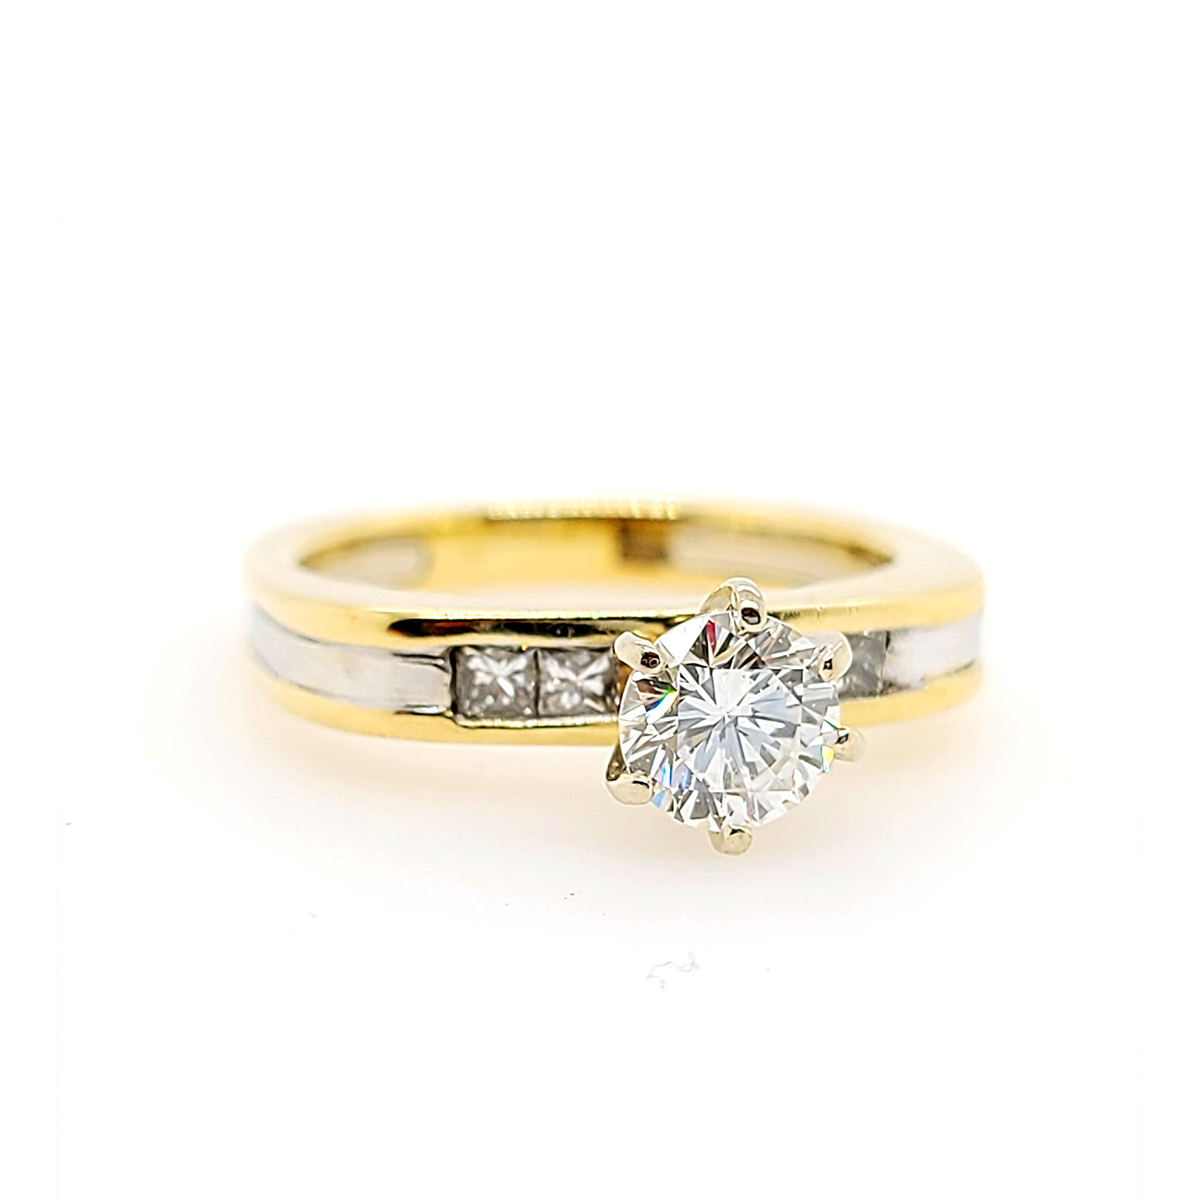 Vintage 14 Karat Yellow Gold Diamond Engagement Ring